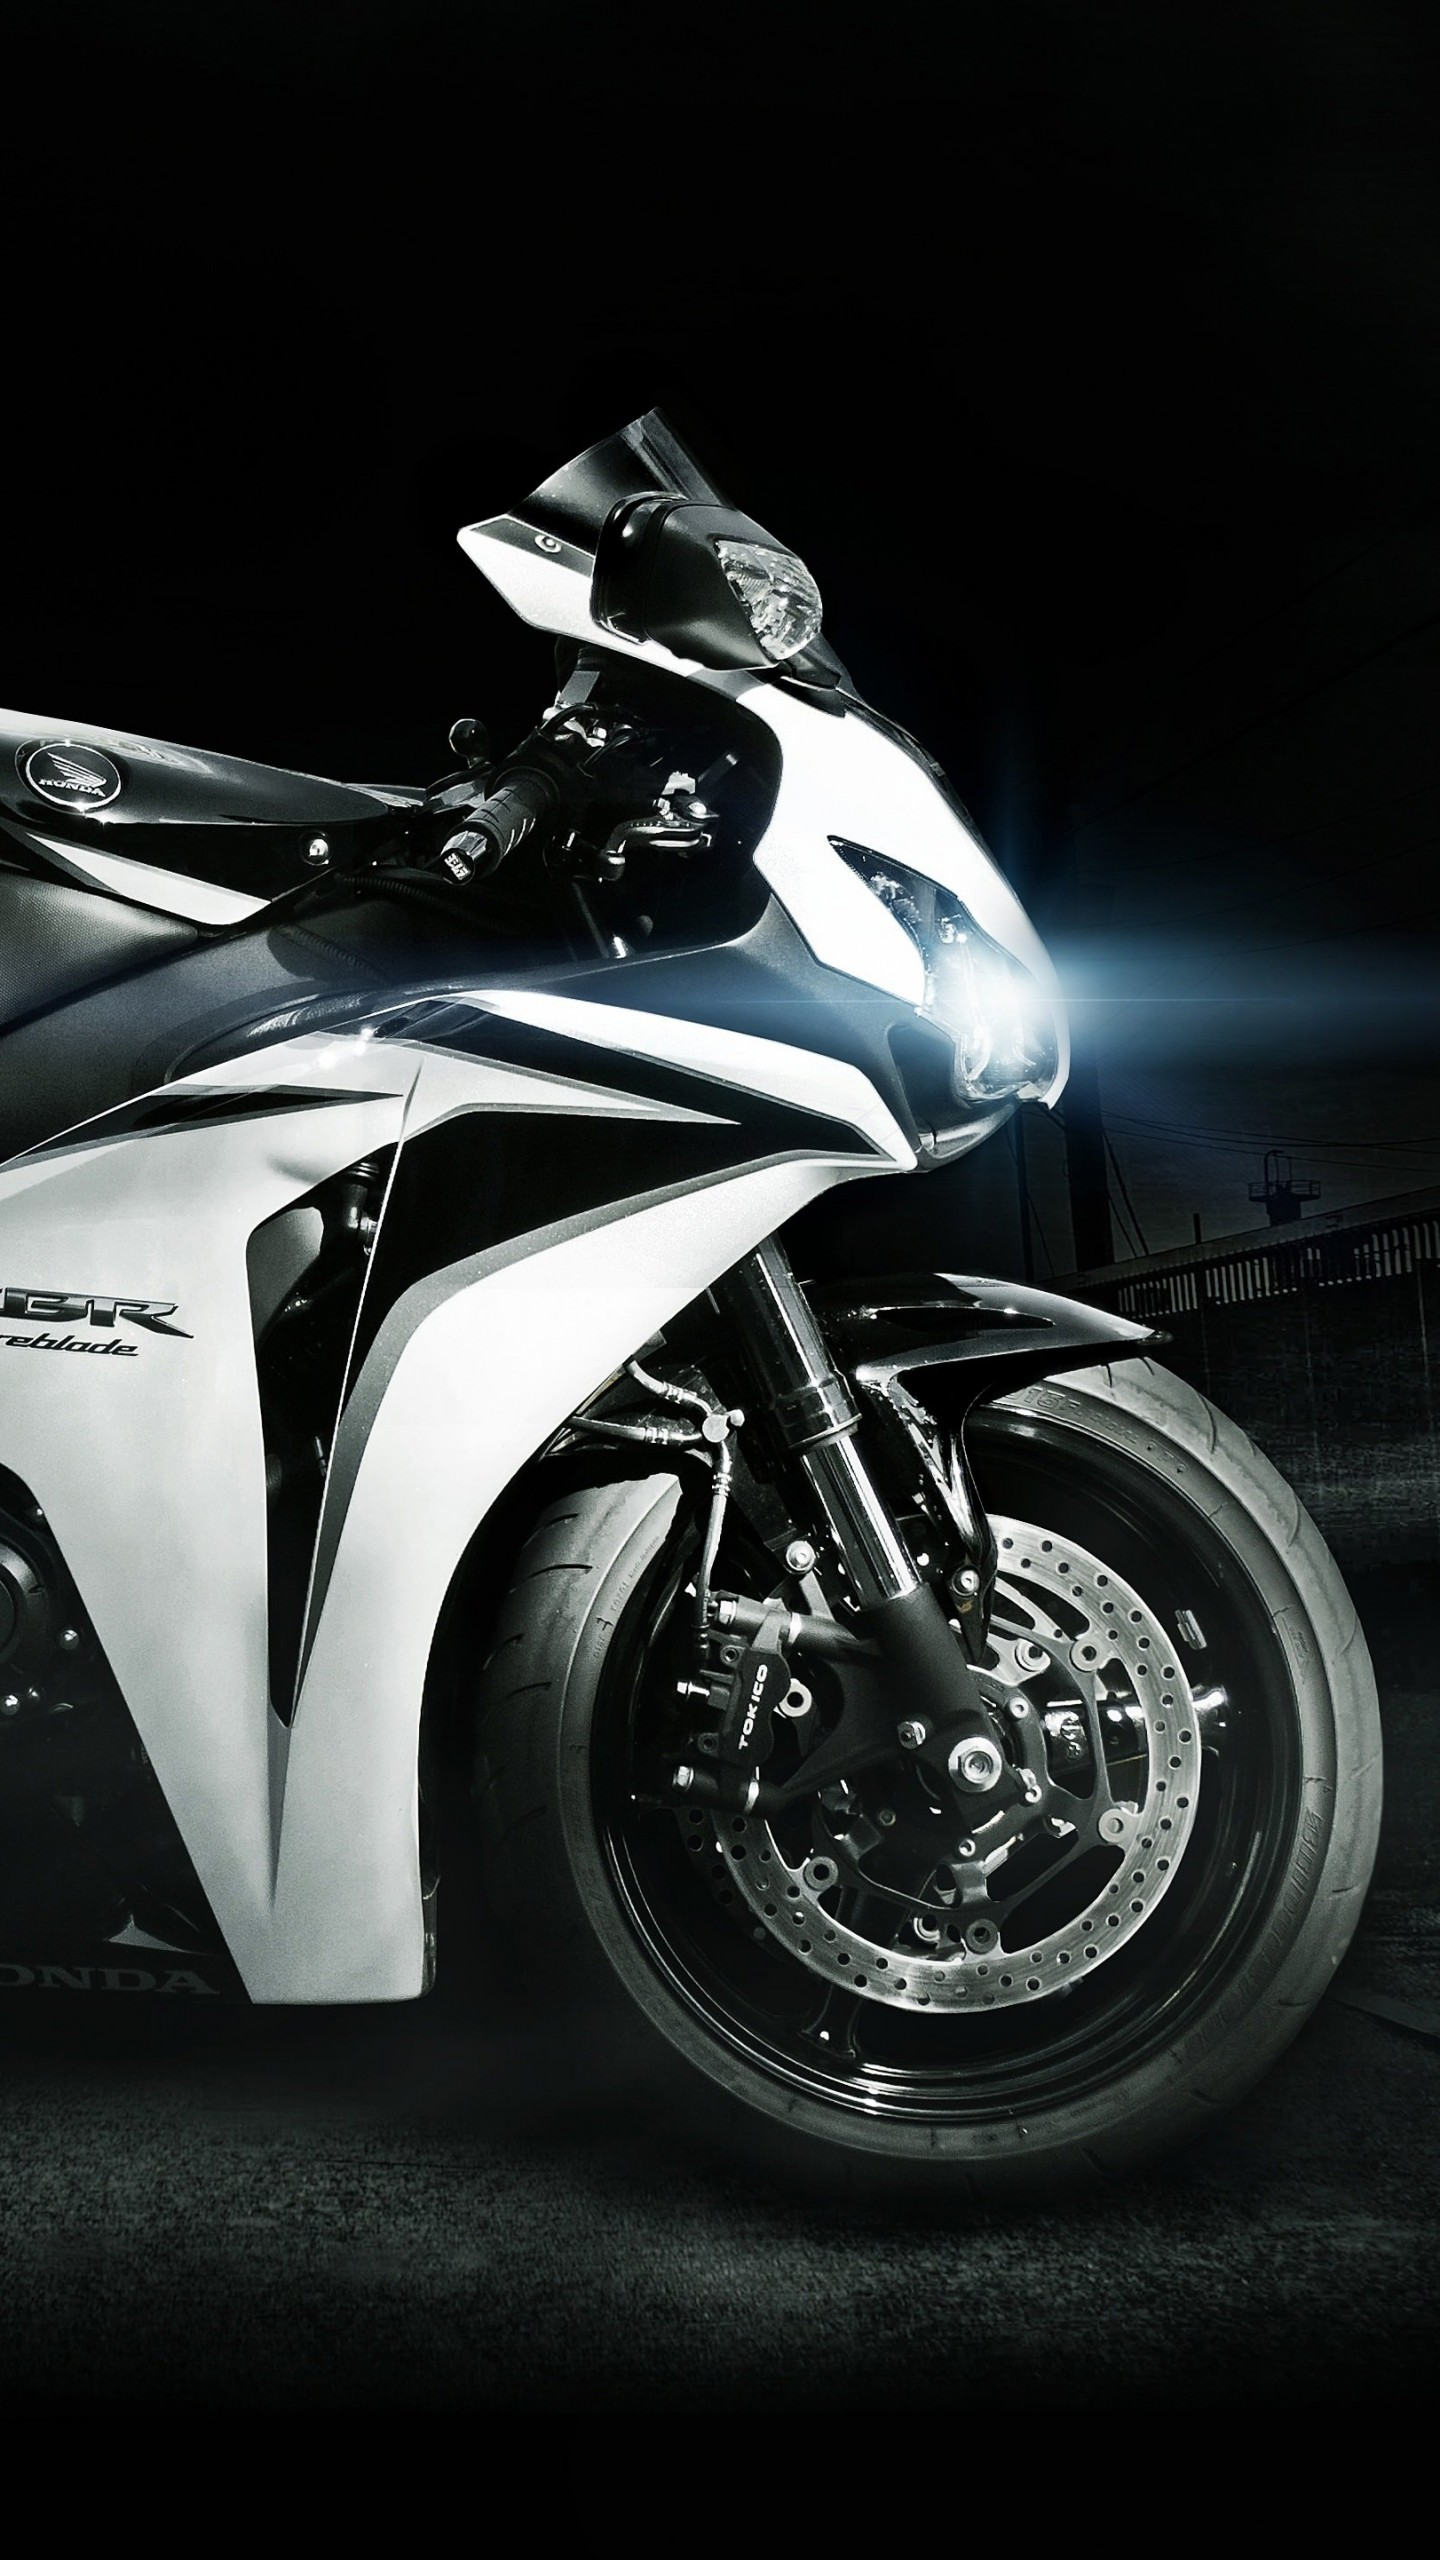 Honda CBR Fireblade Wallpaper for LG G3